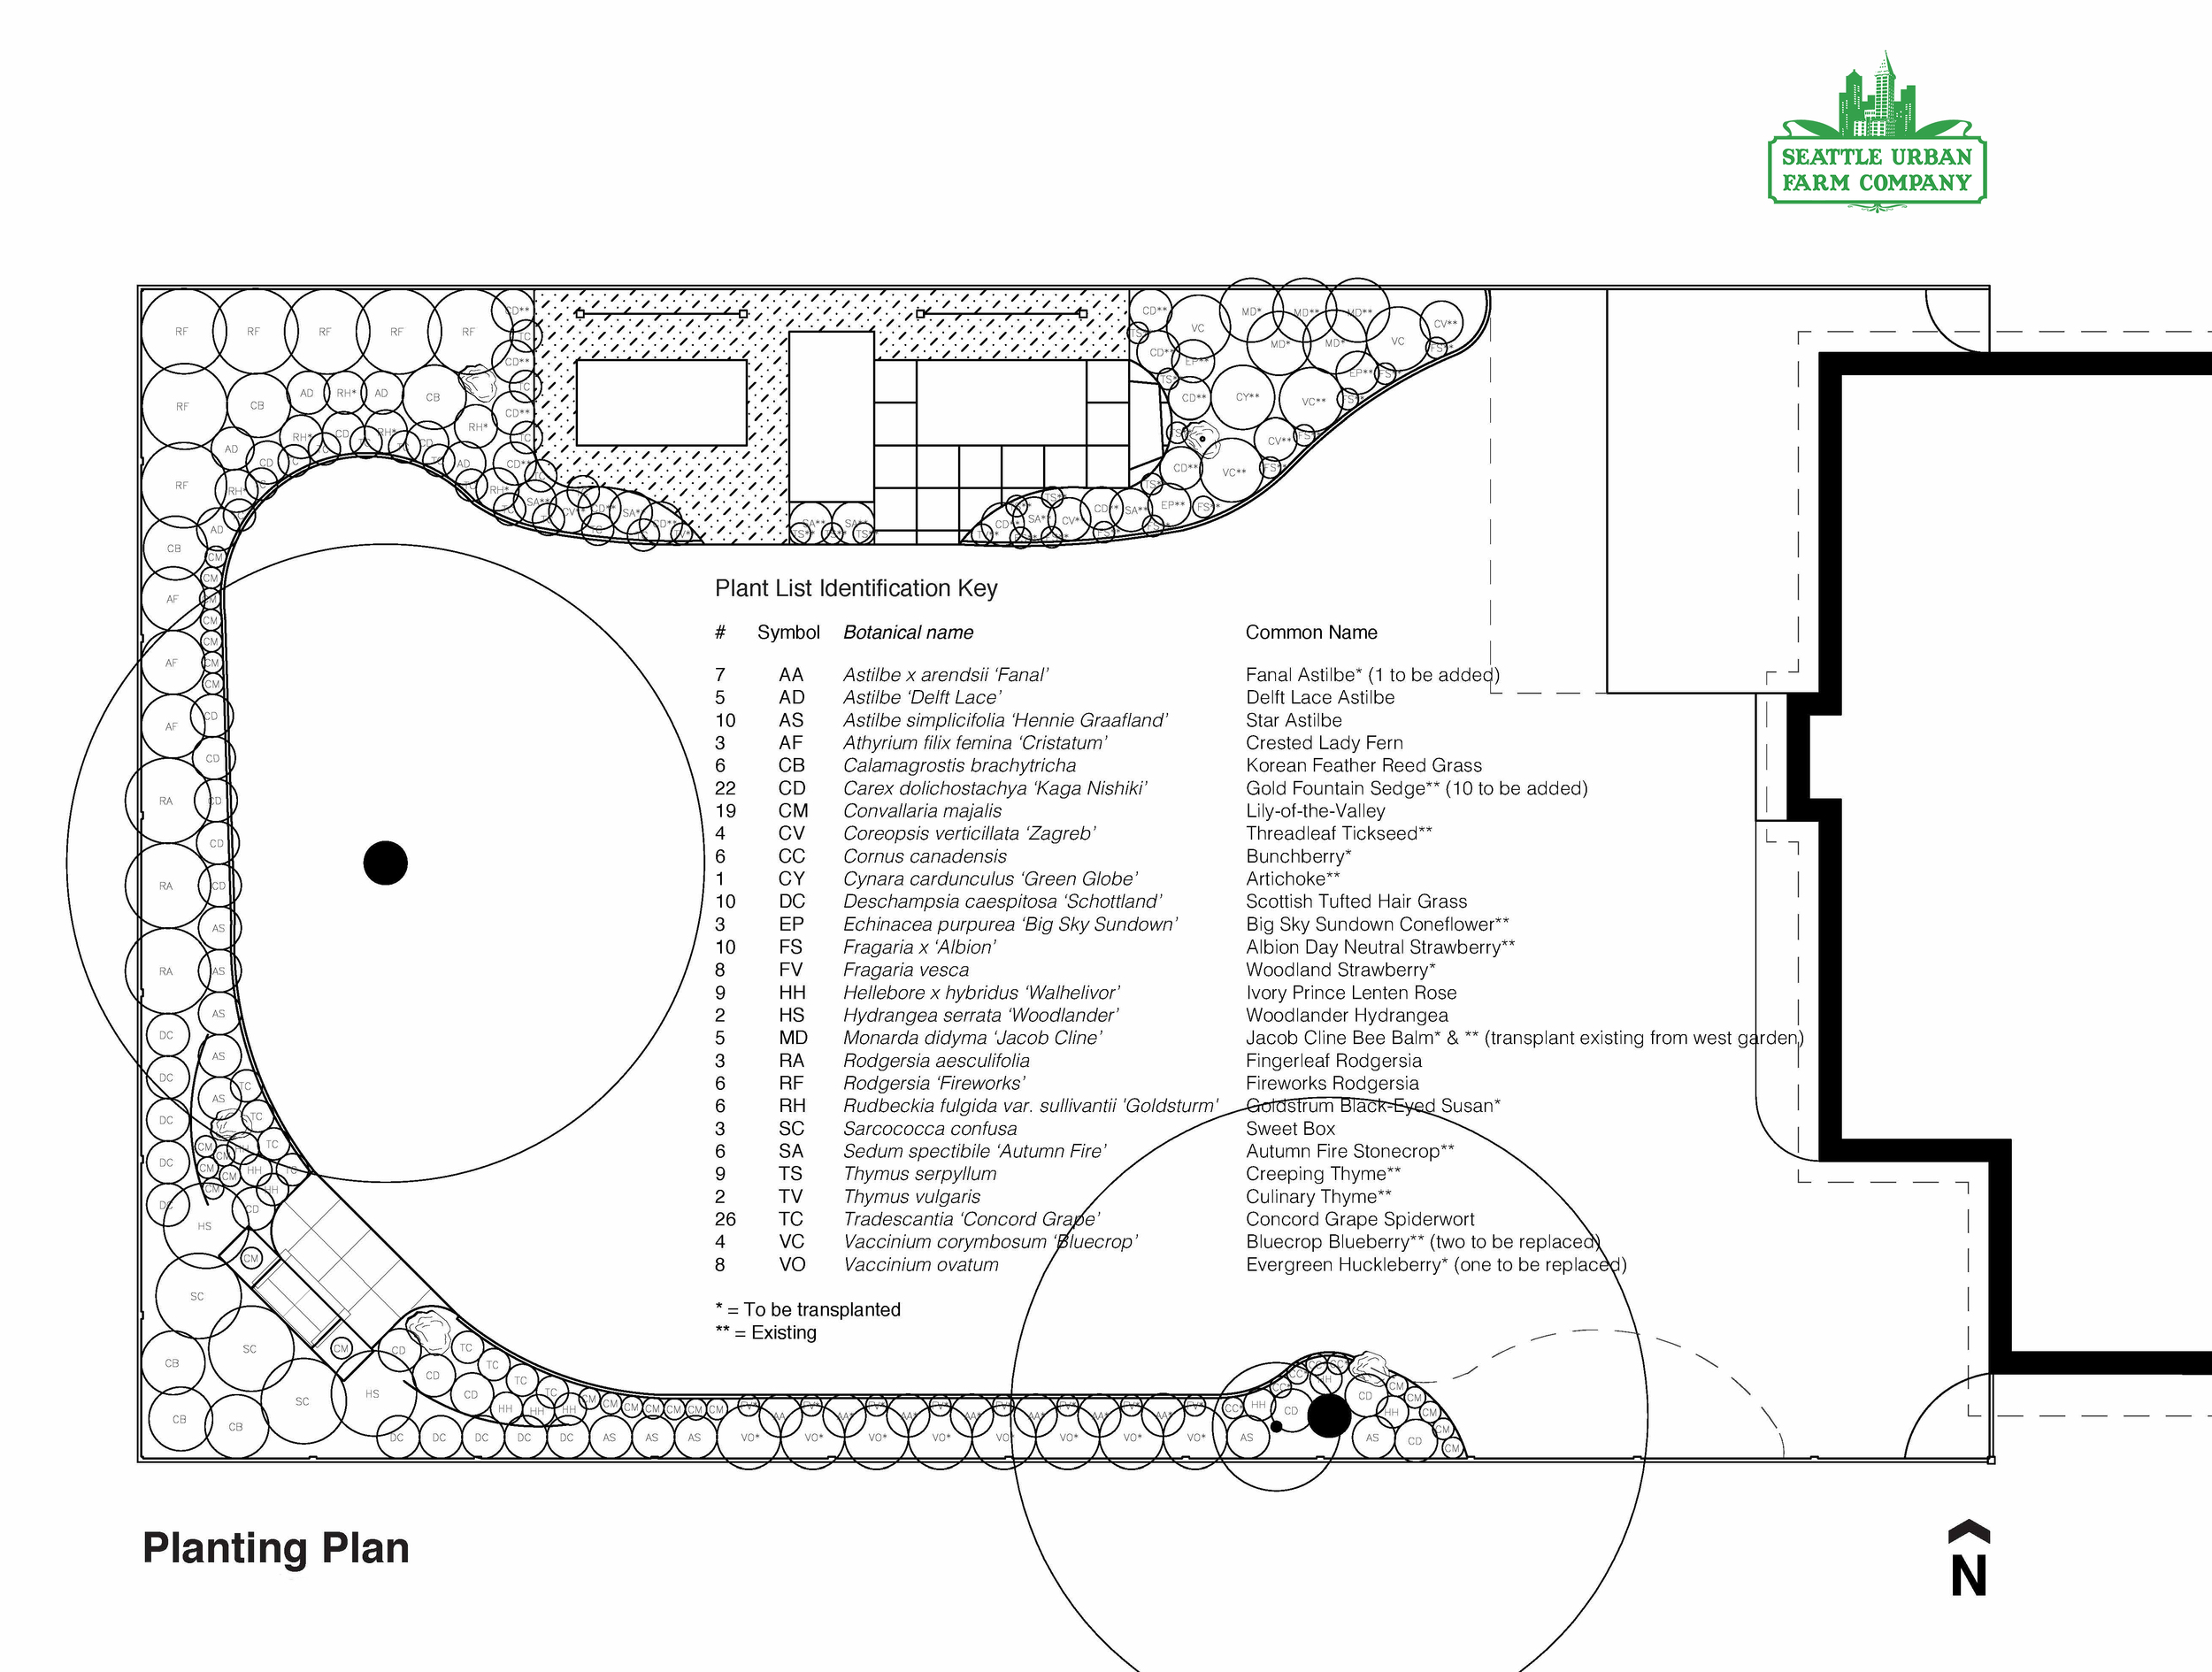 Planting Plan_Seattle Urban Farm Co.